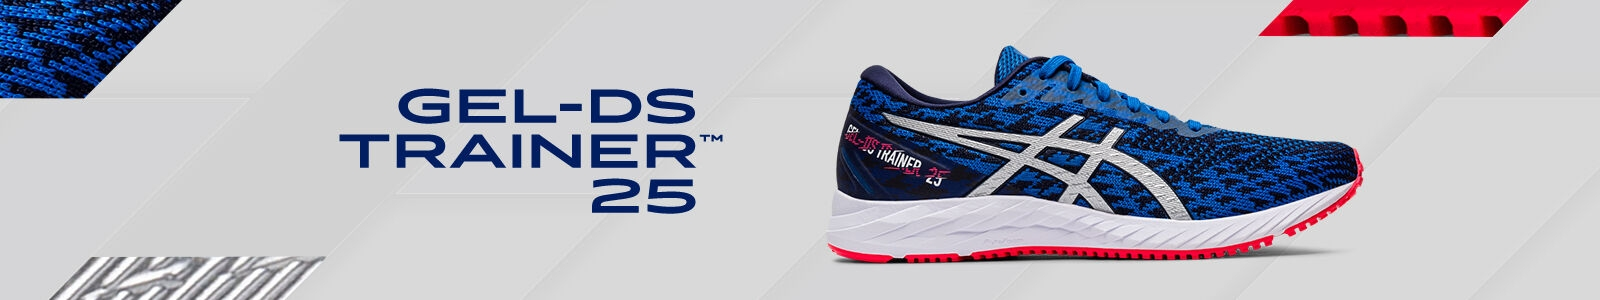 GEL-DS TRAINER™